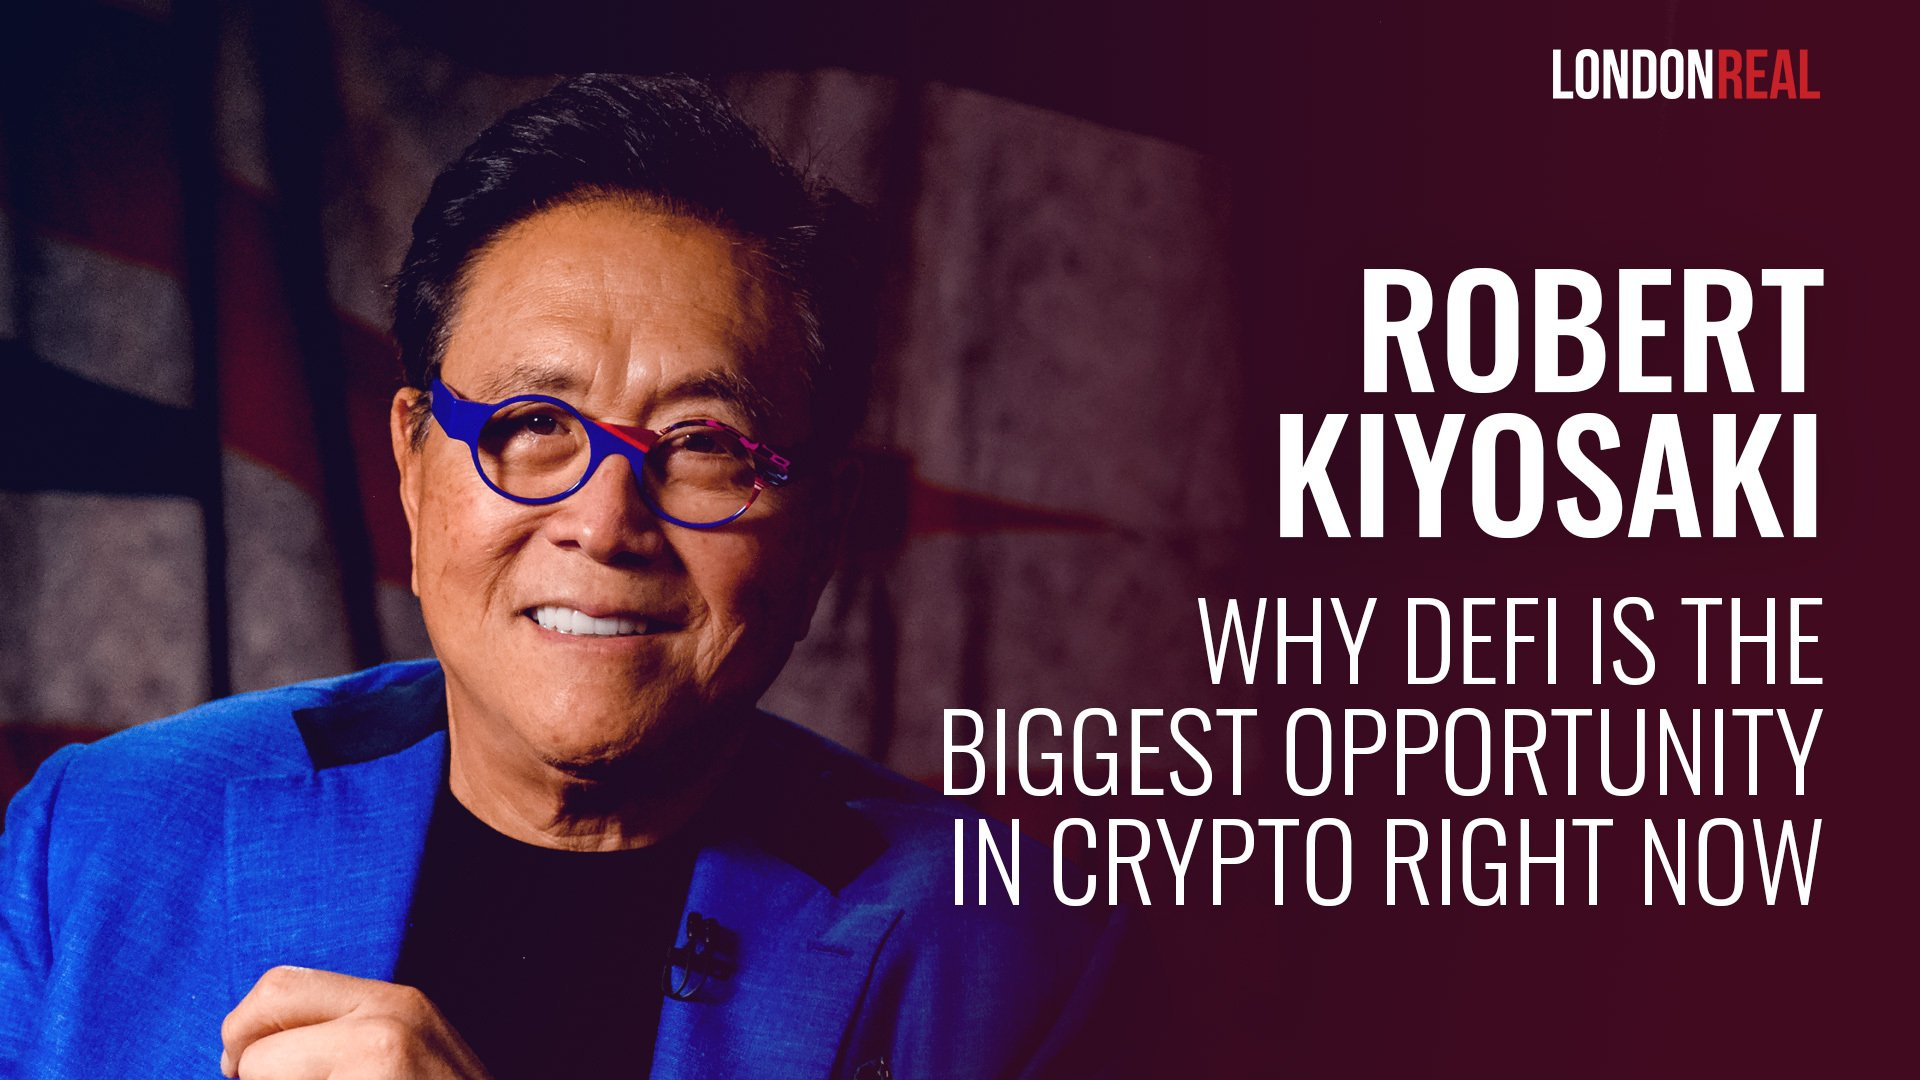 Robert Kiyosaki - Why DeFi Is The Biggest Opportunity In Crypto Right Now